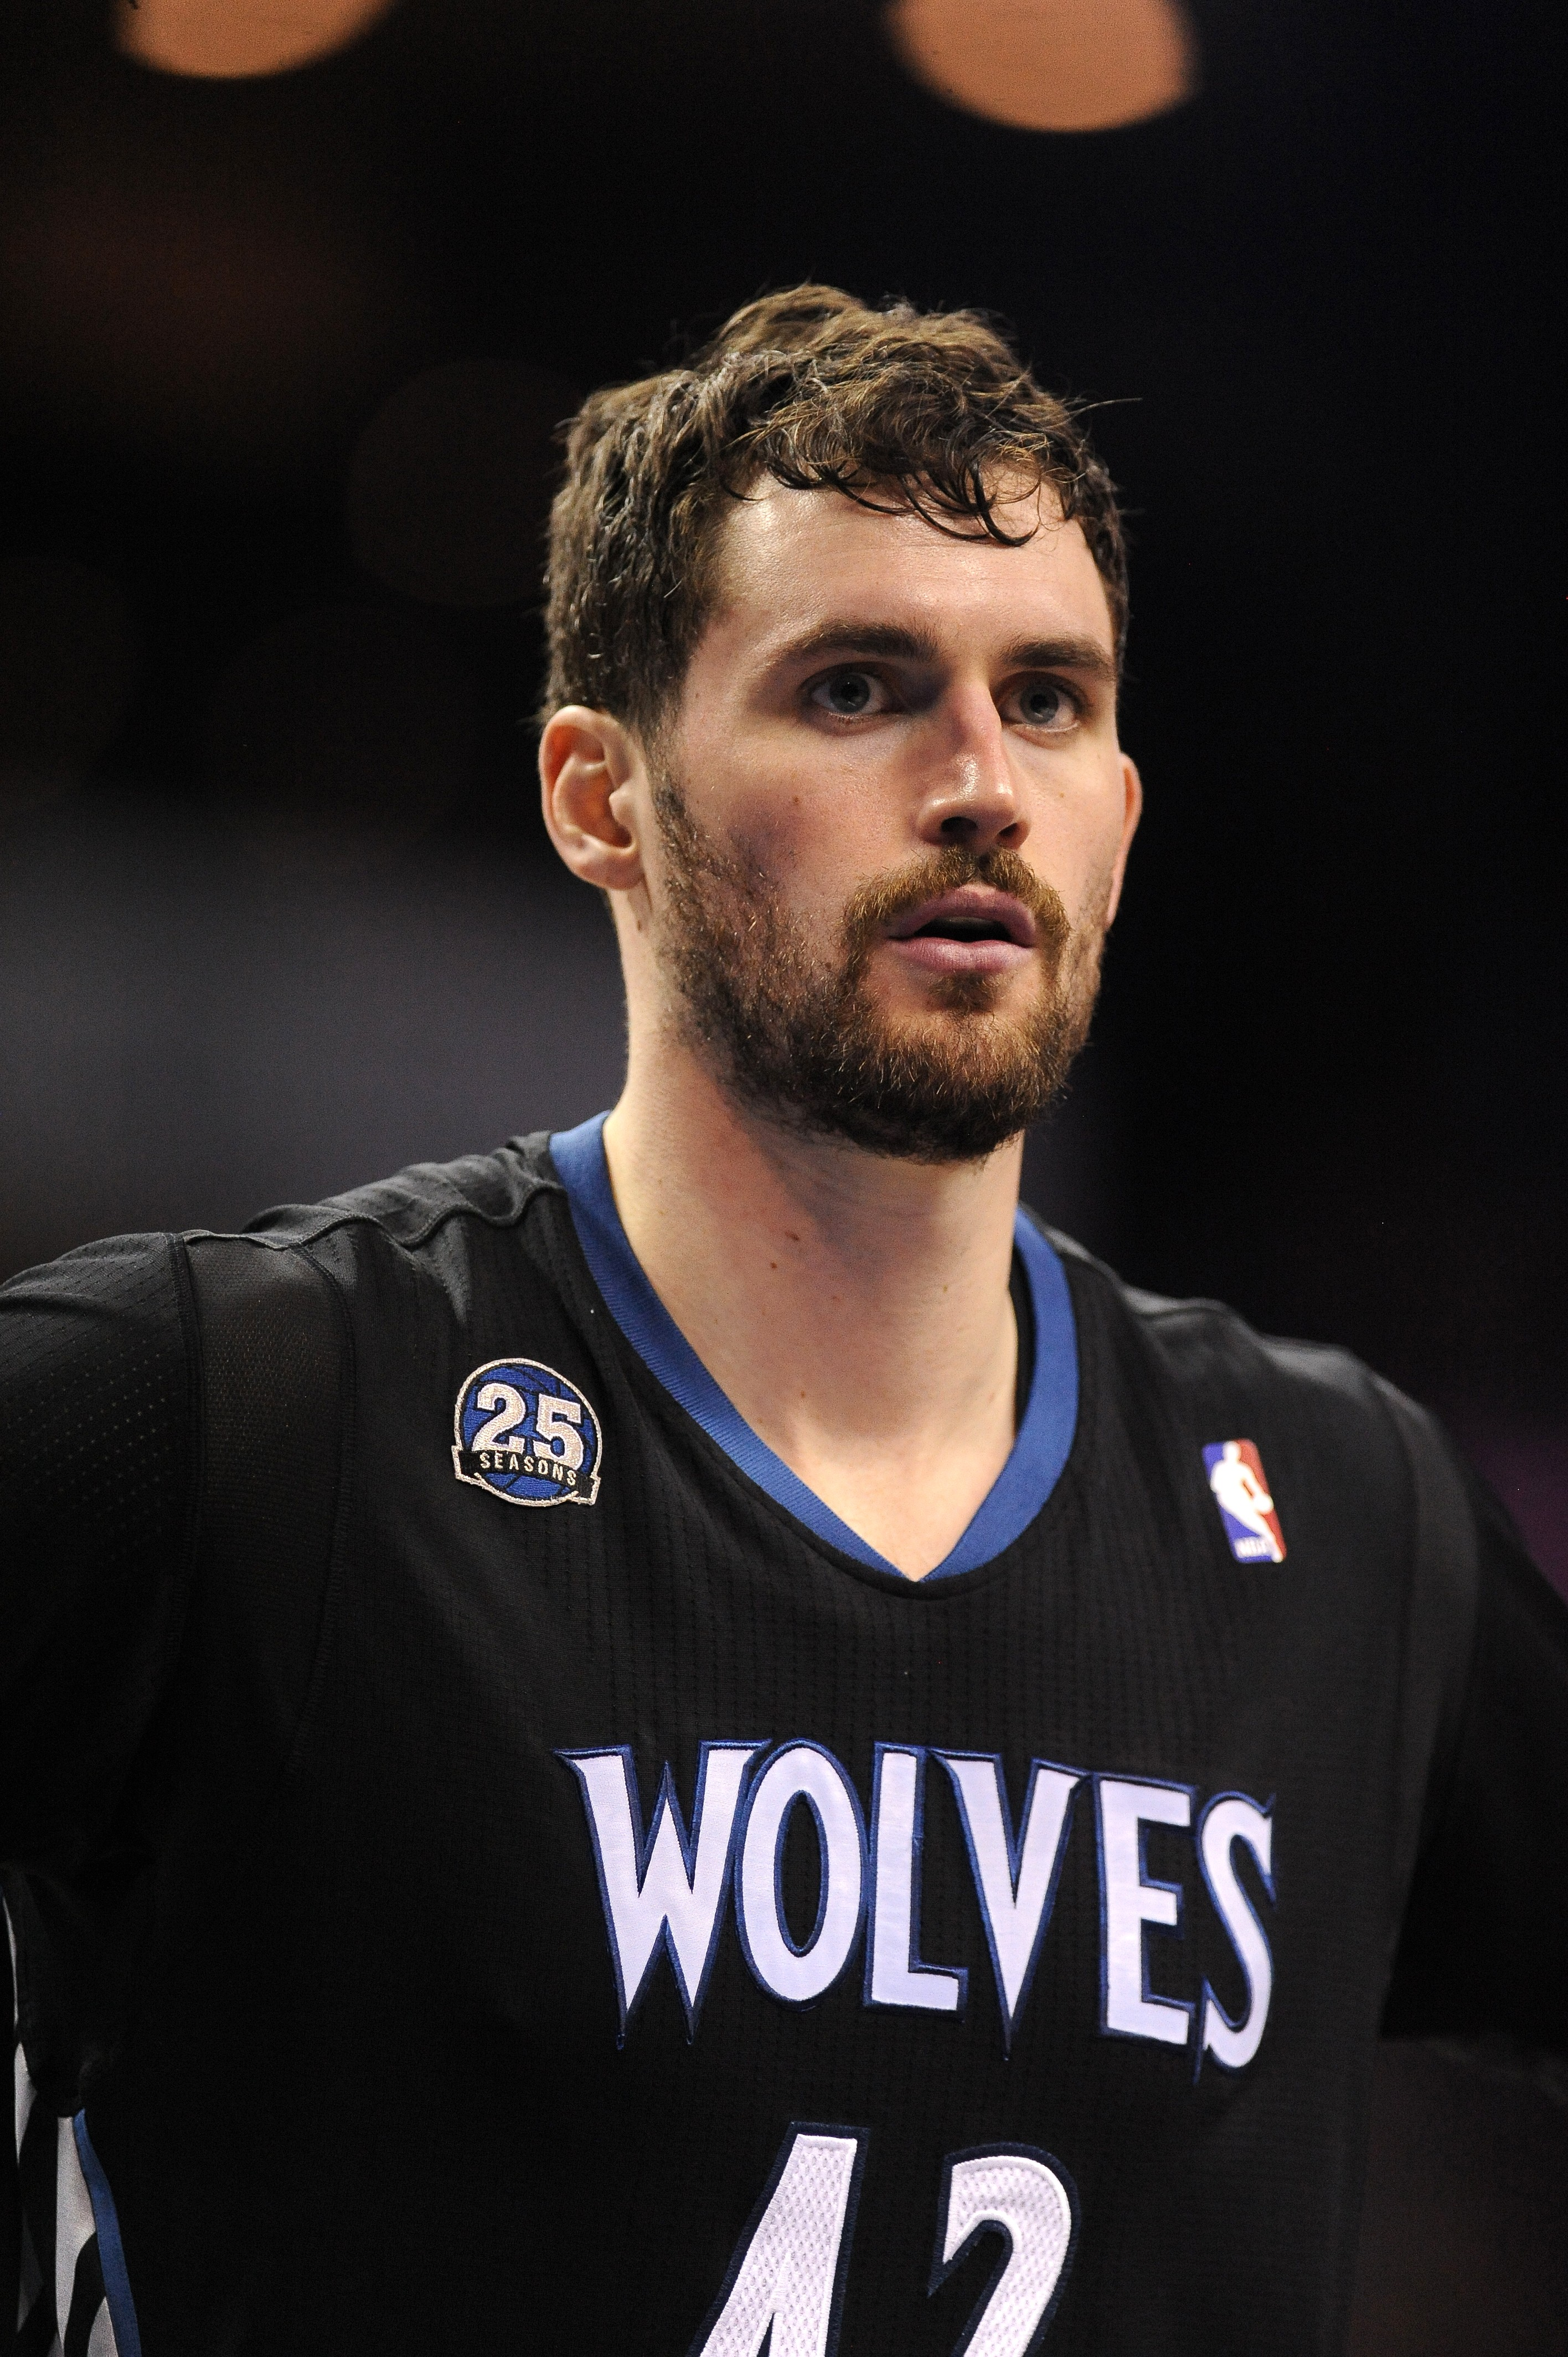 Kevin Love of the Minnesota Timberwolves during a NBA game between the Charlotte Bobcats and the Minnesota Timberwolves at the Time Warner Arena on March 14, 2014 in Charlotte, North Carolina